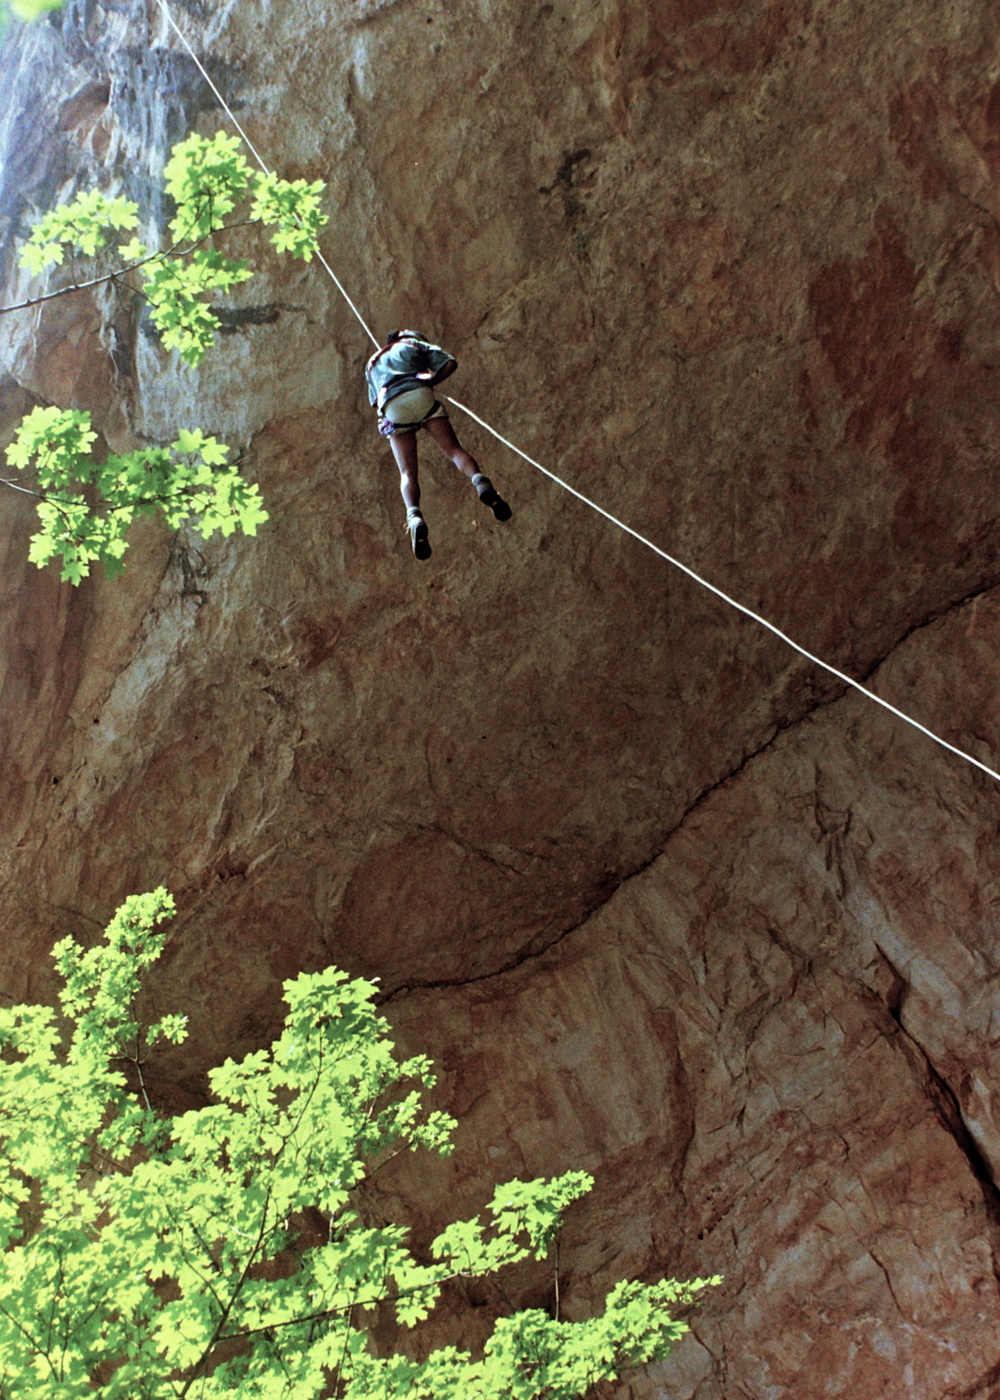 Iffy on rope at Gunsight Cave